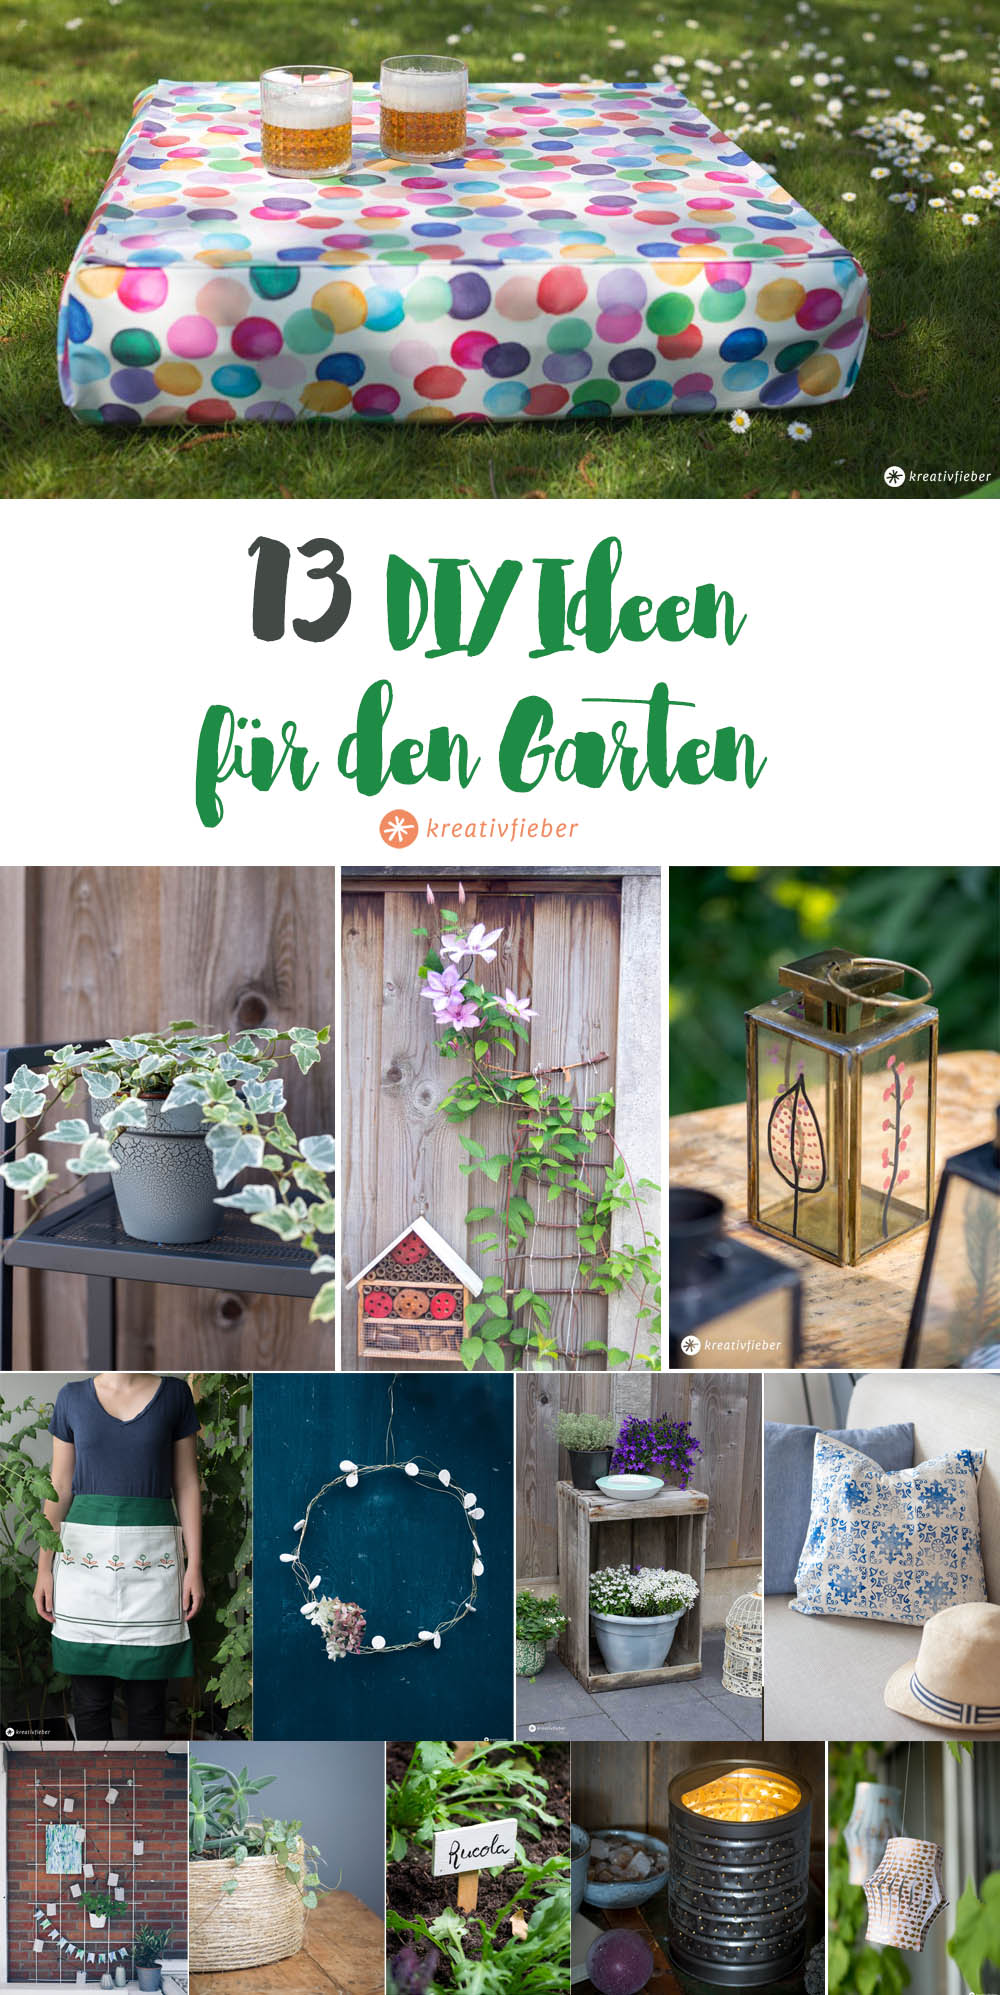 13 diy ideen f r den garten. Black Bedroom Furniture Sets. Home Design Ideas